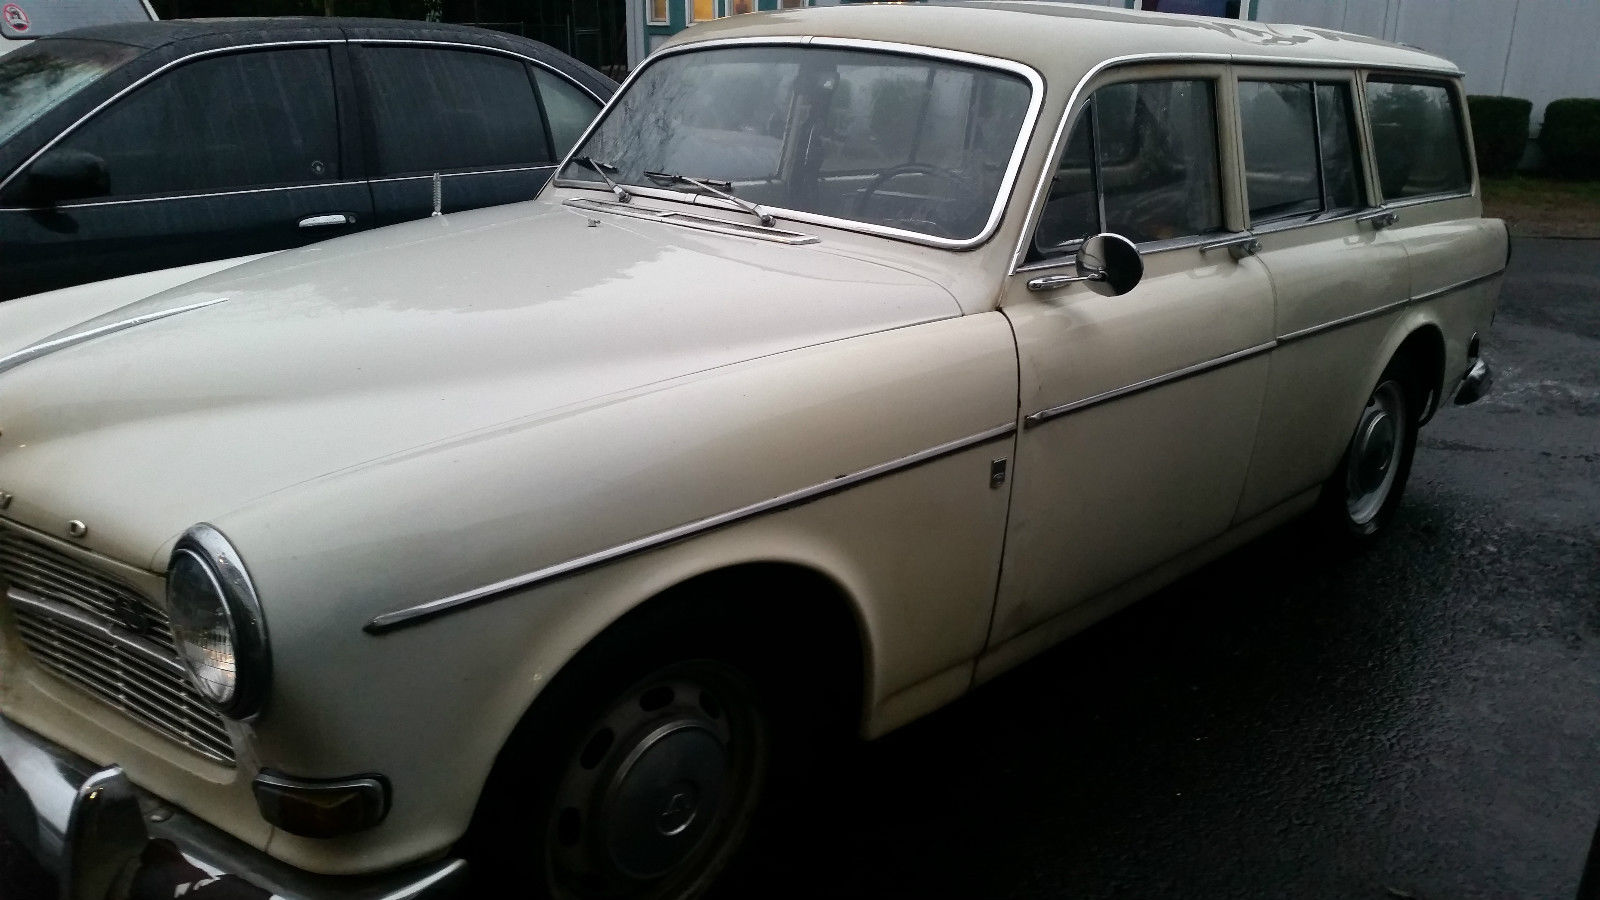 1966 Volvo Amazon 122s Wagon - Classic Volvo Other 1966 for sale